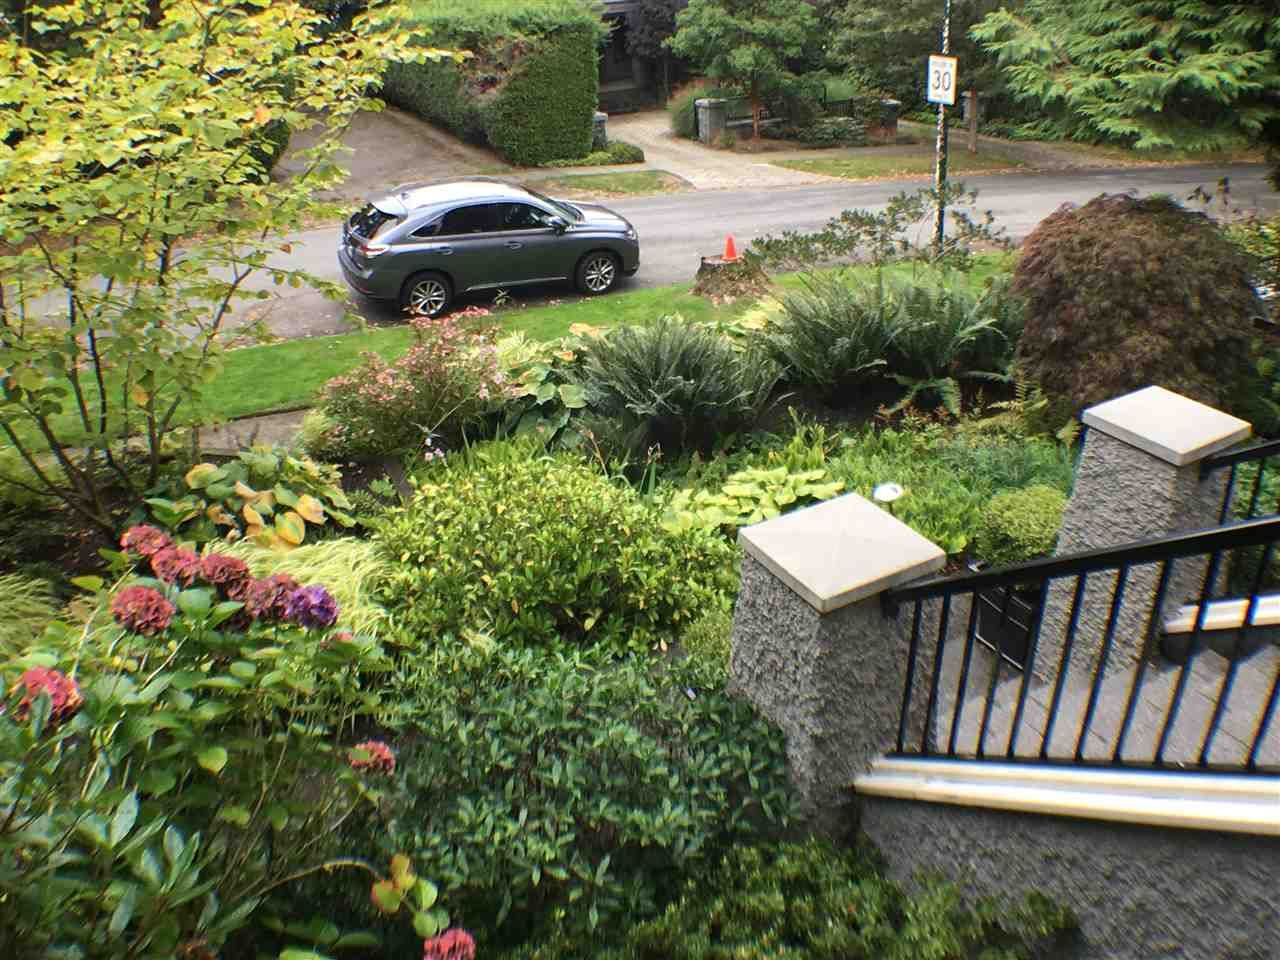 Photo 20: Photos: 1268 NANTON Avenue in Vancouver: Shaughnessy House for sale (Vancouver West)  : MLS®# R2209391